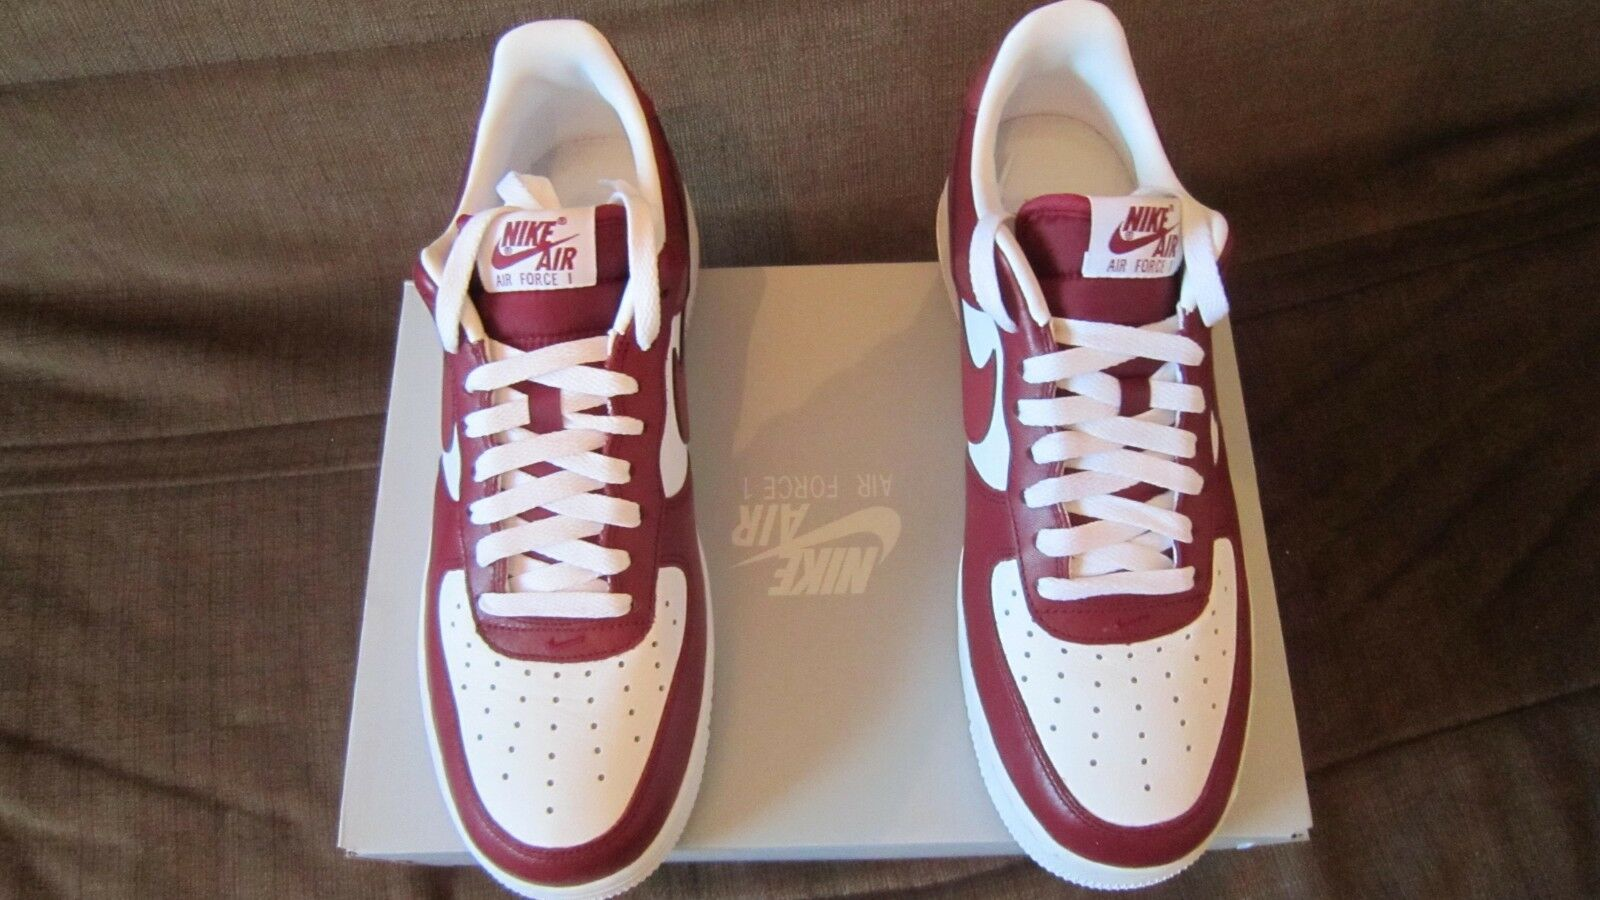 Chaussure Nike Air Force-1 Low, Homme, Neuve, Taille 42.5, Rouge & Blanche